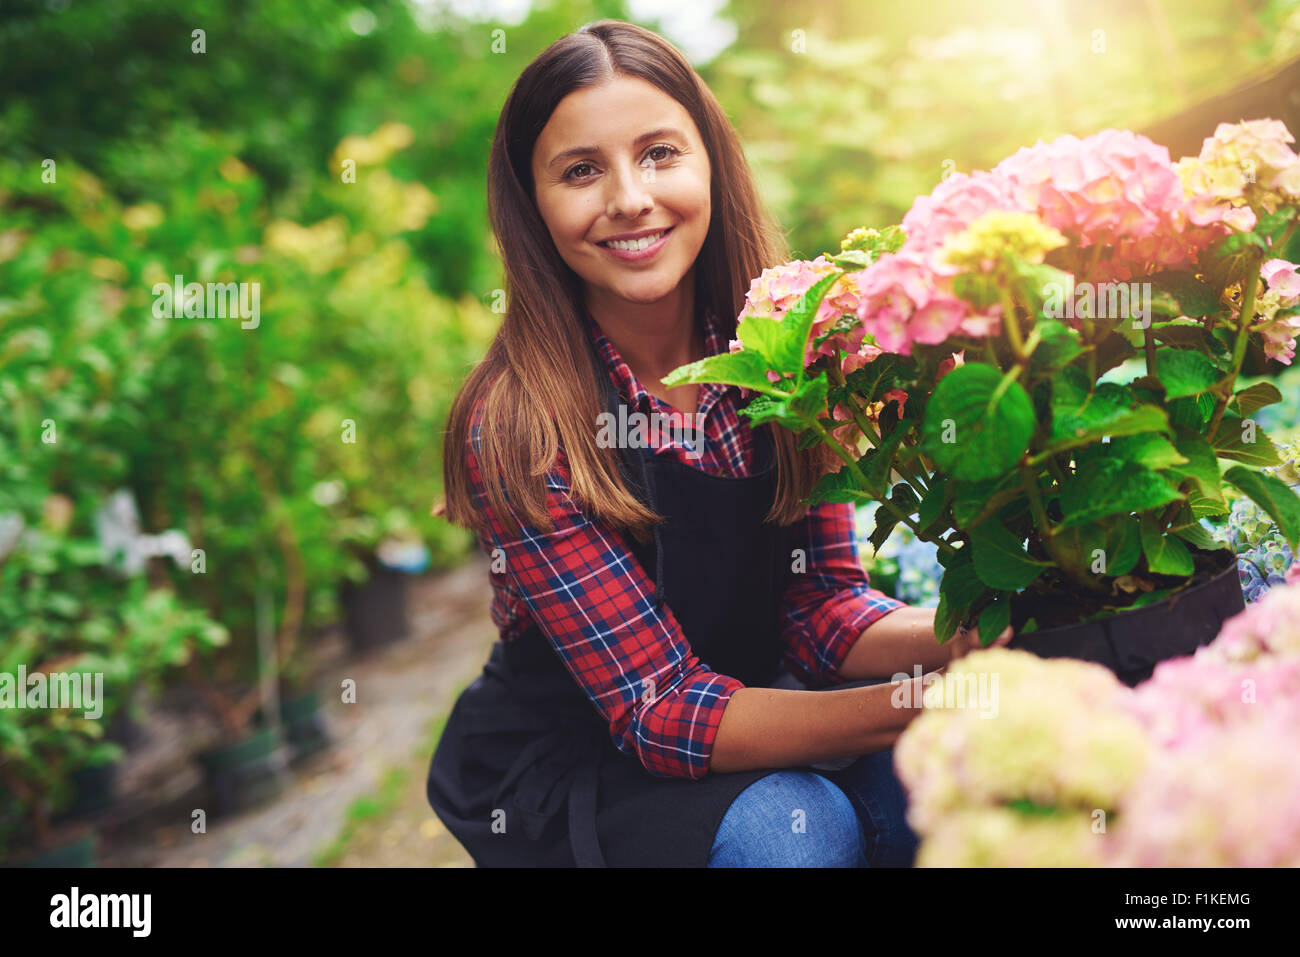 Smiling happy woman displaying a pink hydrangea plant that she has selected from amongst the plants on display at - Stock Image